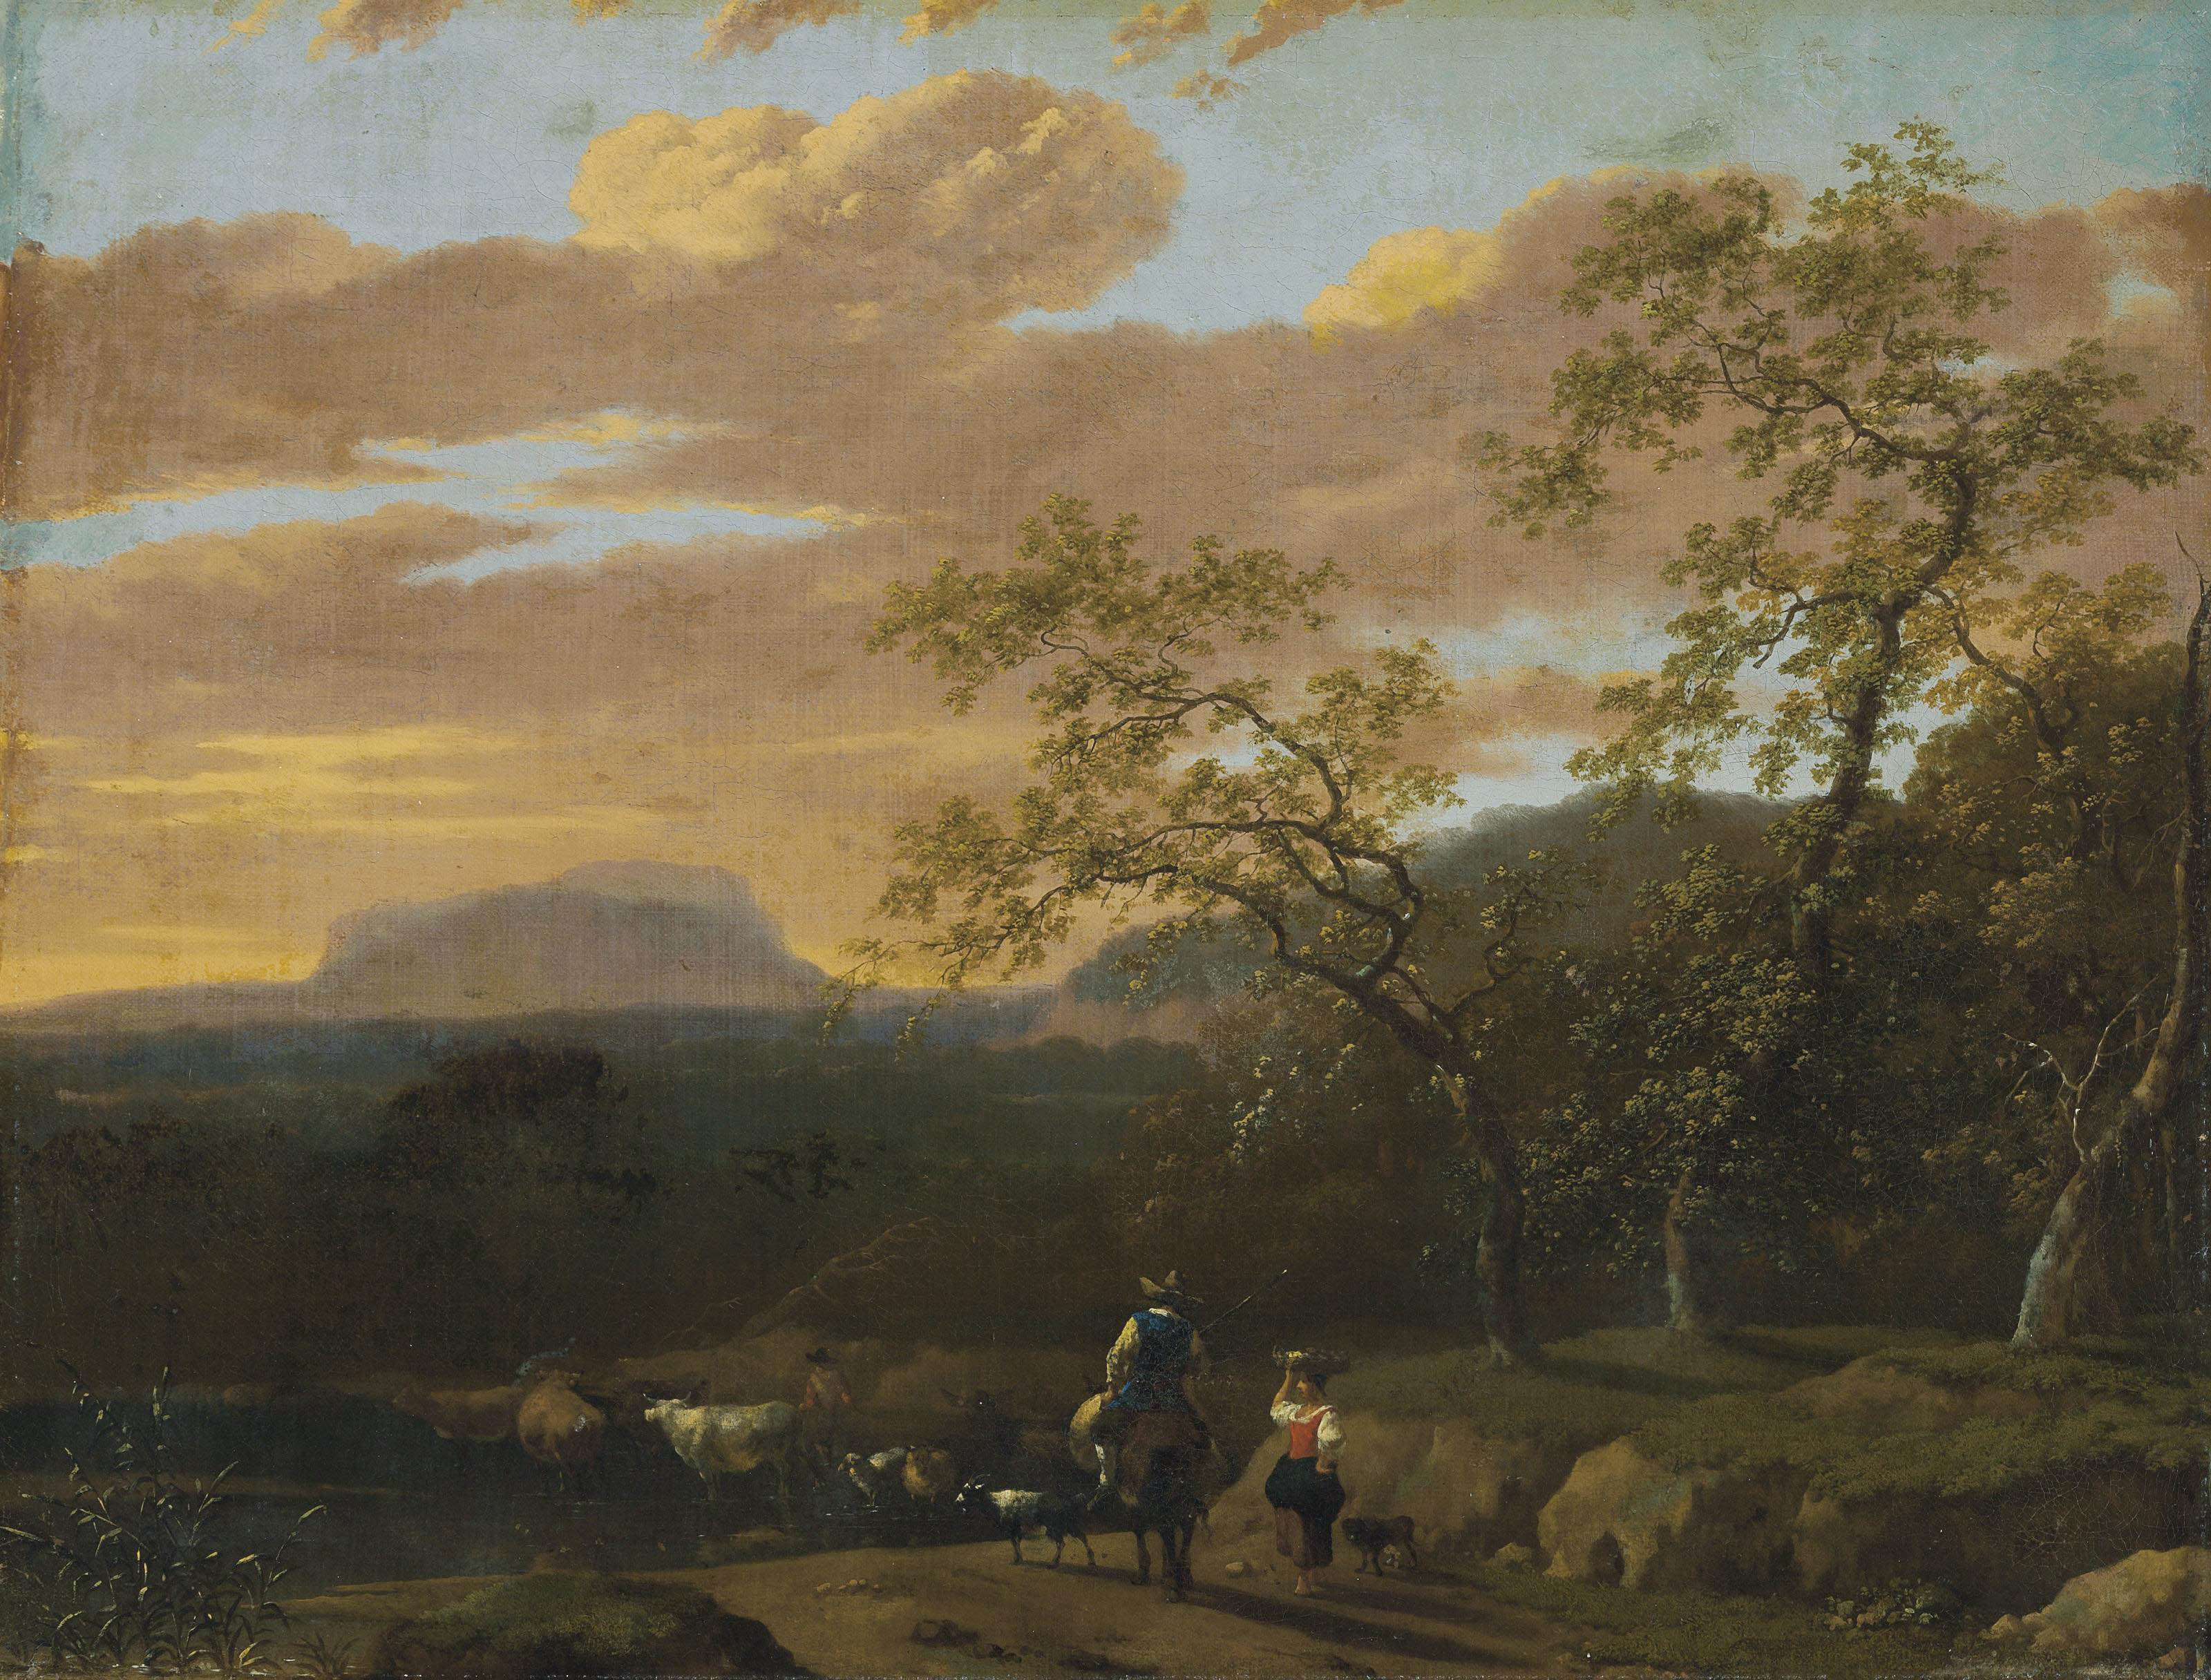 A mountainous river landscape with peasants, cows, goats and sheep